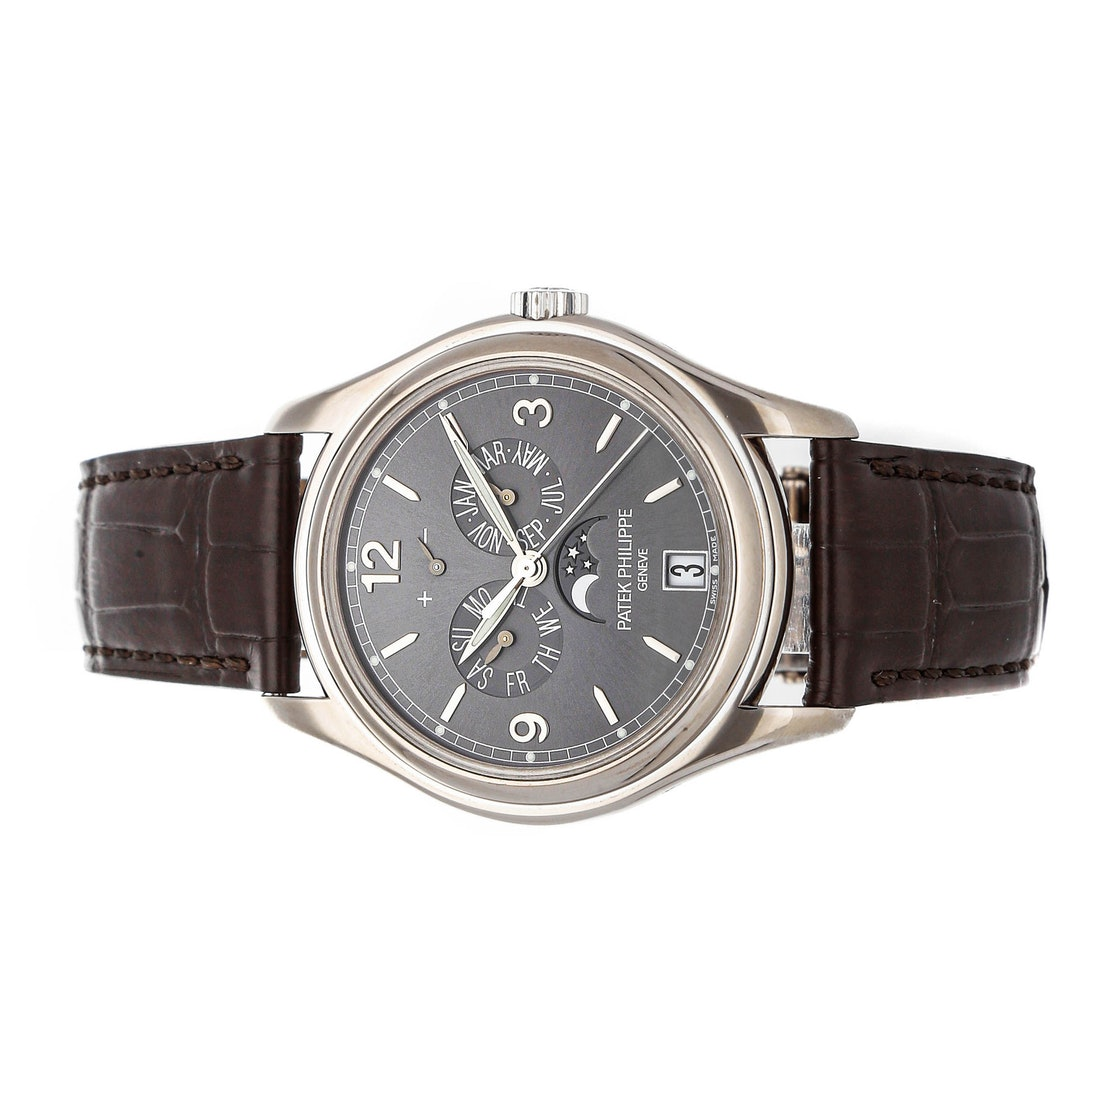 Patek Philippe Complications Annual Calendar Moon Phases 5146G-010